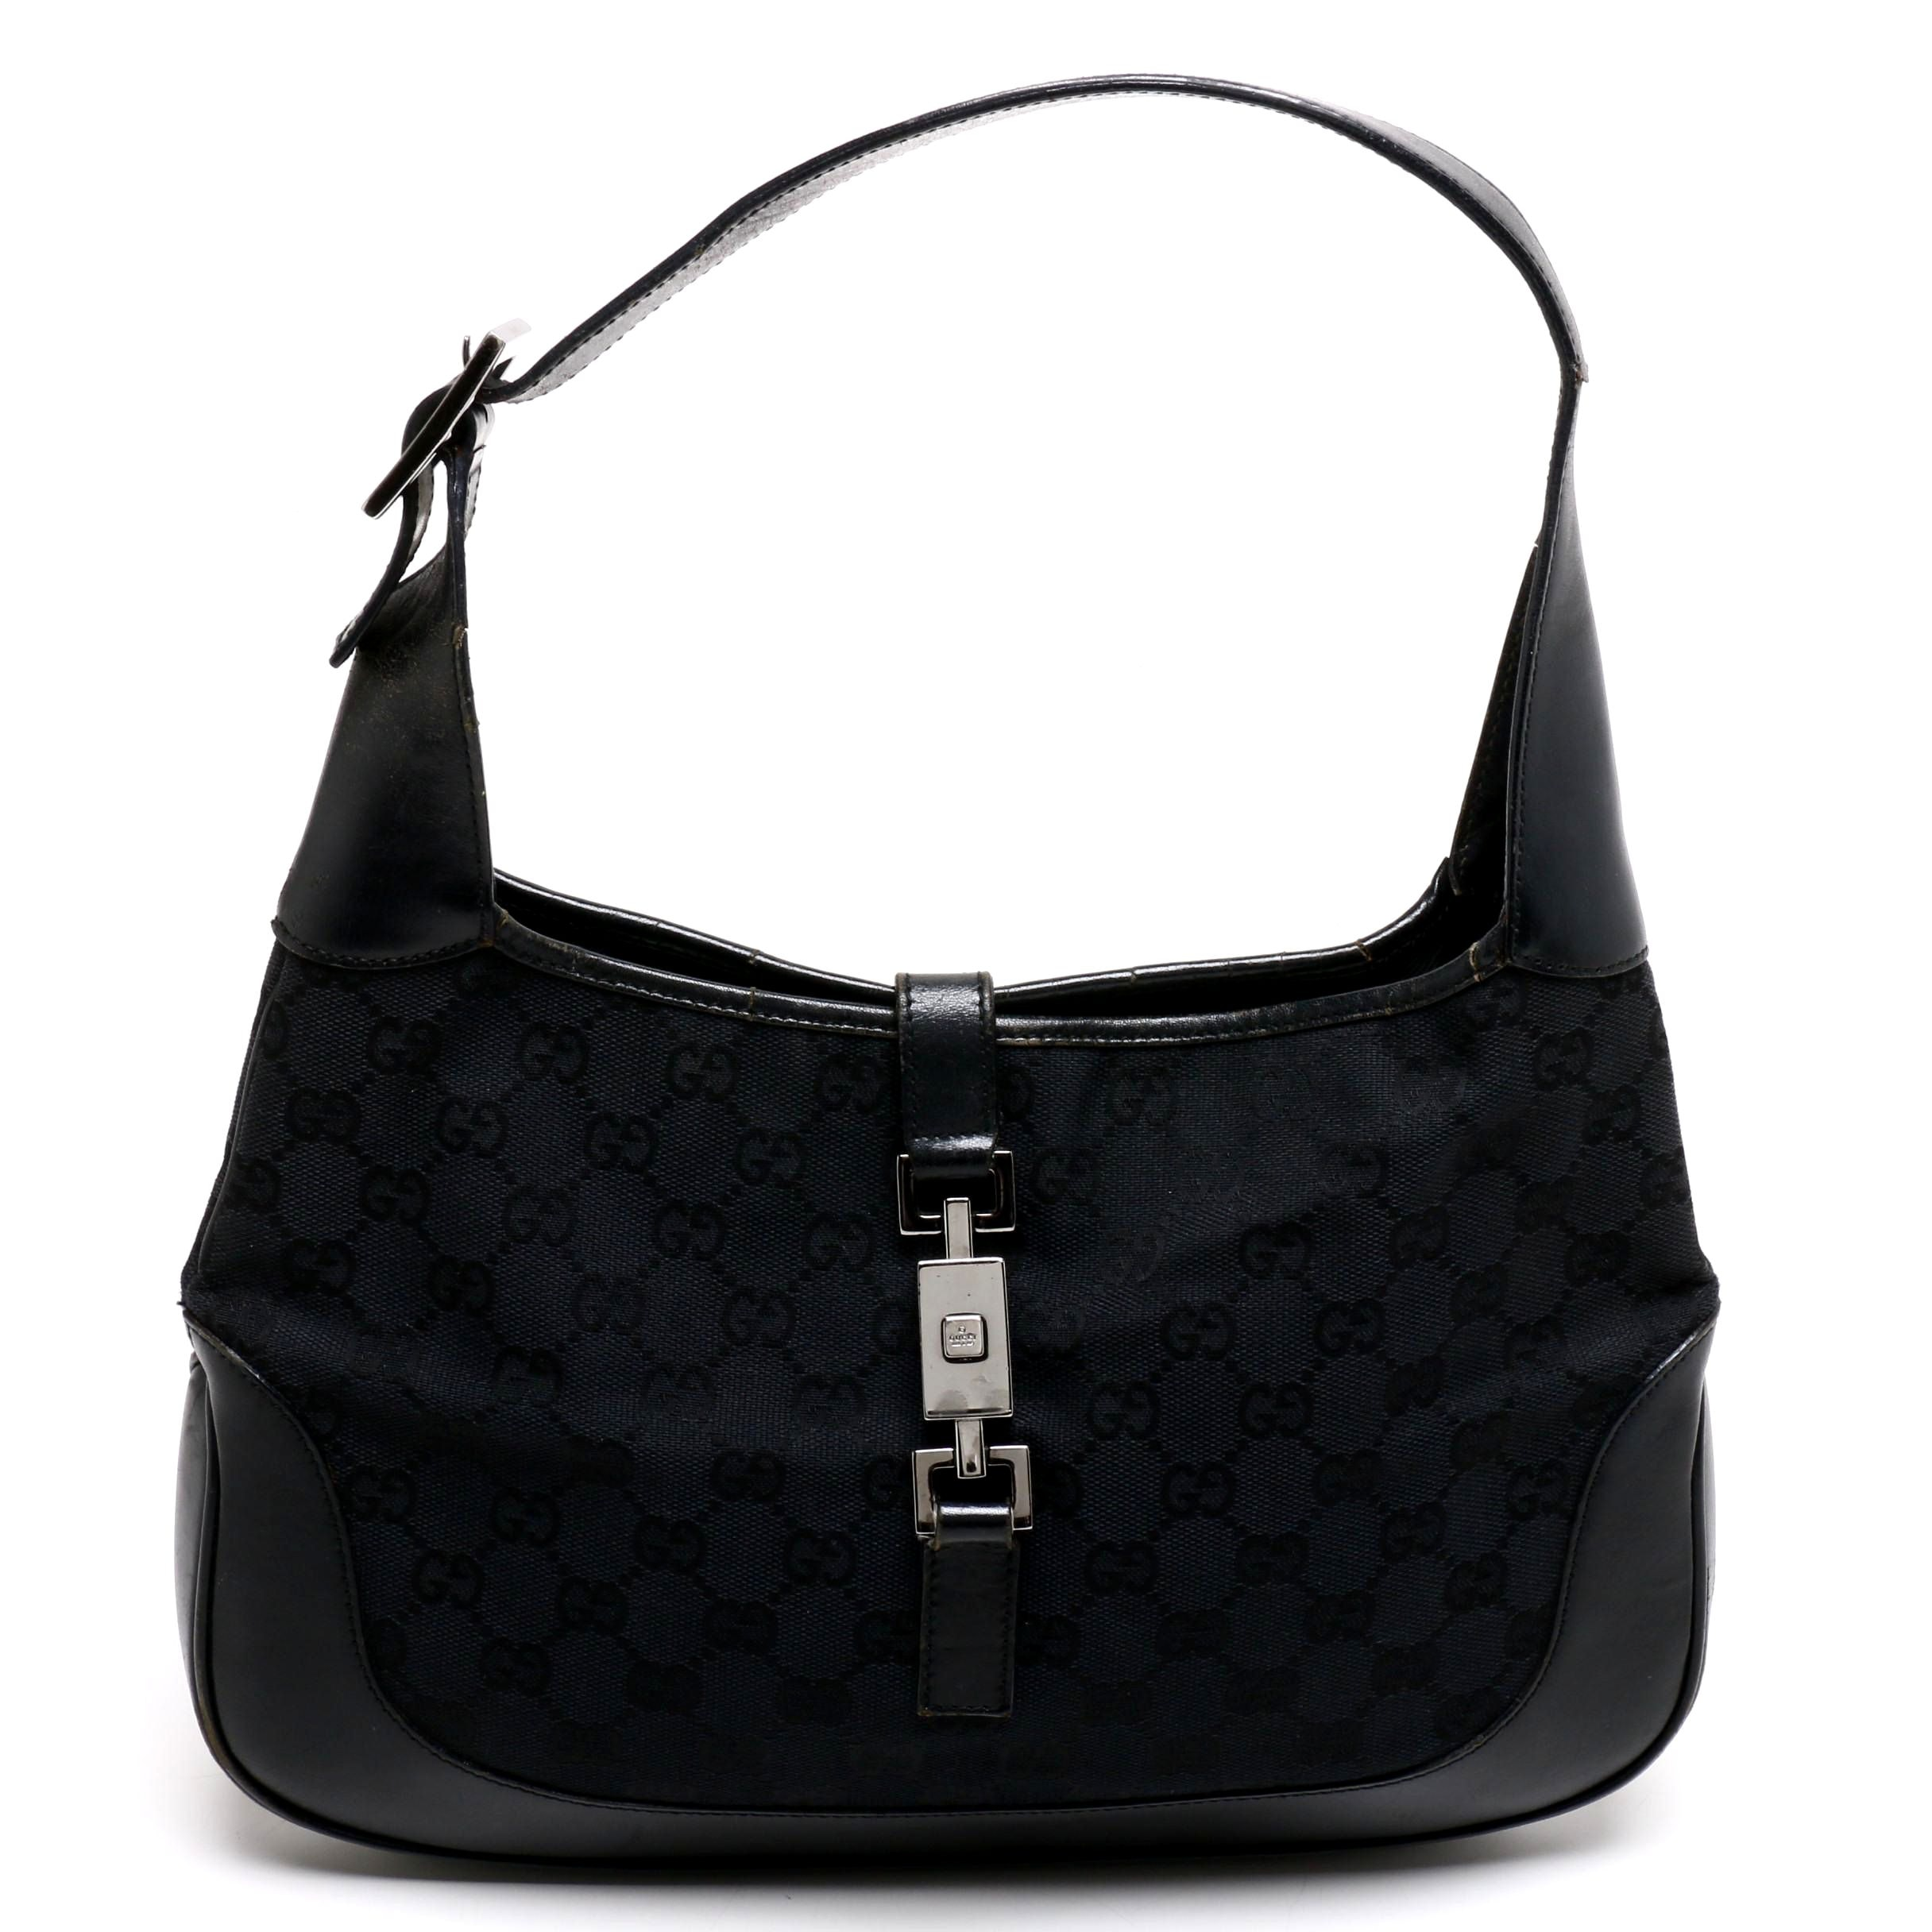 Gucci Black GG Canvas and Leather Jackie Bag